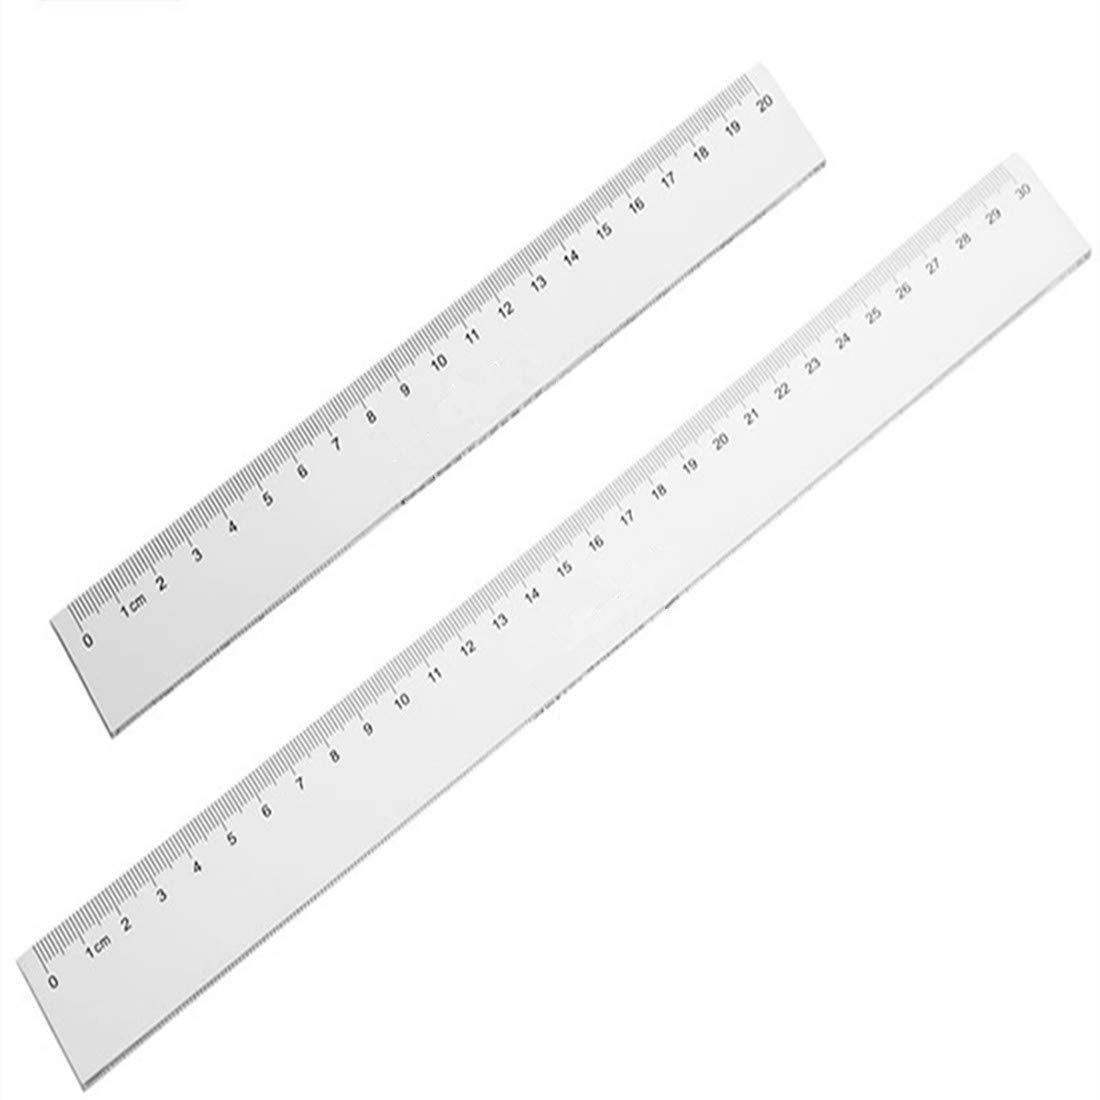 Plastic Ruler Straight Ruler Plastic Measuring Tool 12 inches and 6 inches, 2 Pieces,Pink Purple